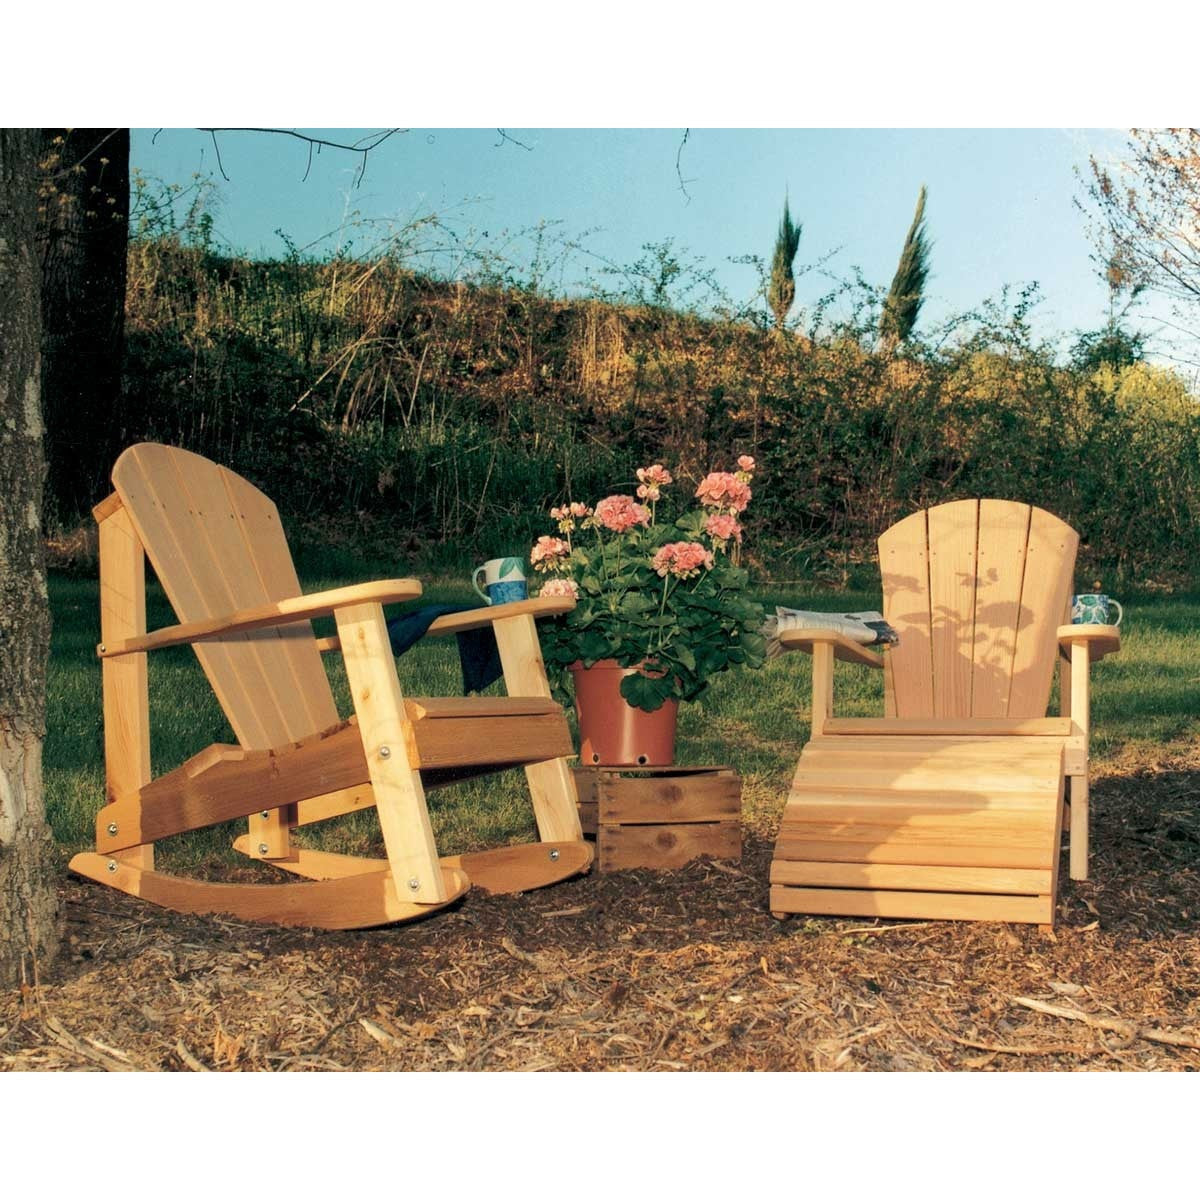 Creekvine Designs Cedar Adirondack Collection - Swings and More